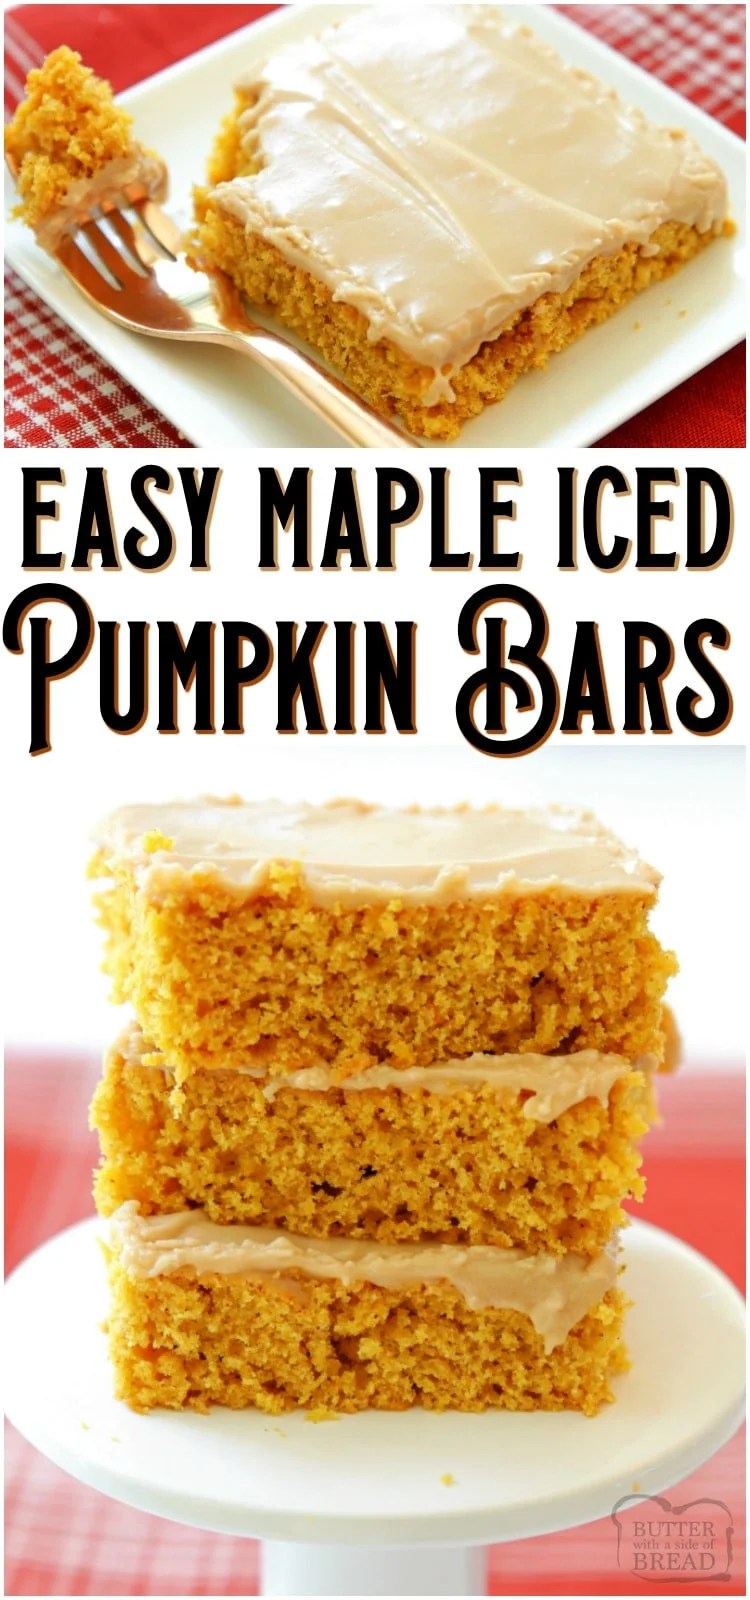 Maple Iced Pumpkin Bars are soft, sweet dessert bars loaded with Fall flavors. These easy baked spiced pumpkin bars are covered with a cream cheese maple icing that tastes heavenly! #pumpkin #baking #dessert #maple #creamcheese #frosting #Fall #recipe from BUTTER WITH A SIDE OF BREAD